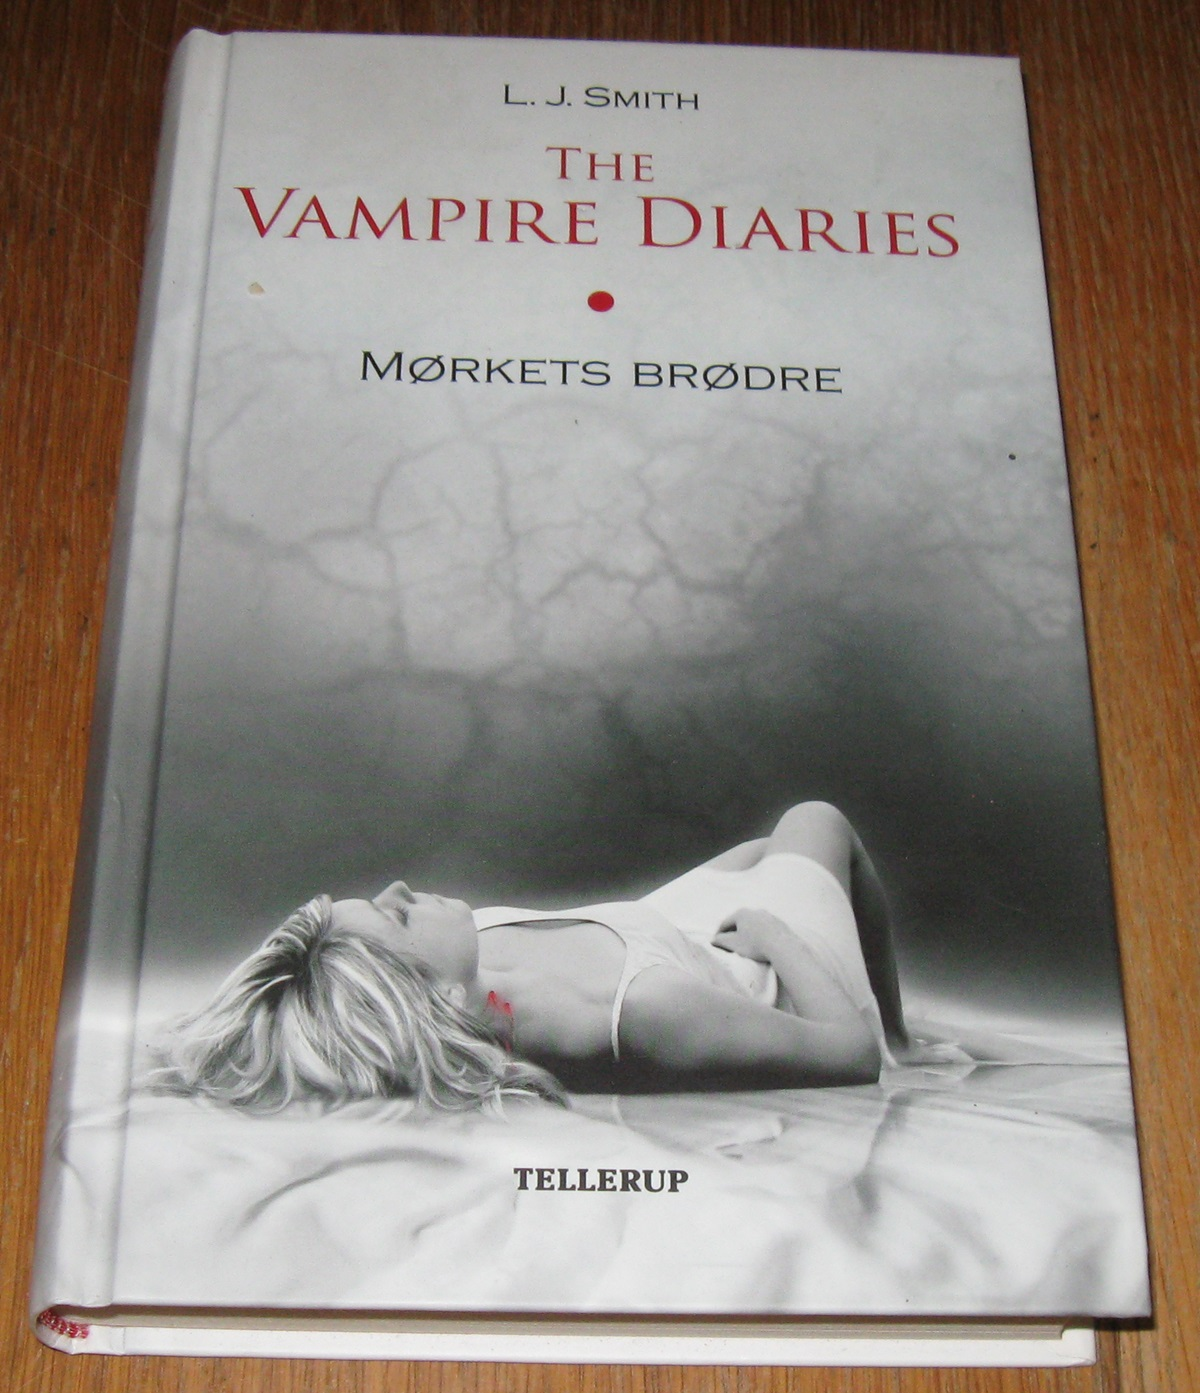 The Vampire Diaries 1, Mørkets brødre